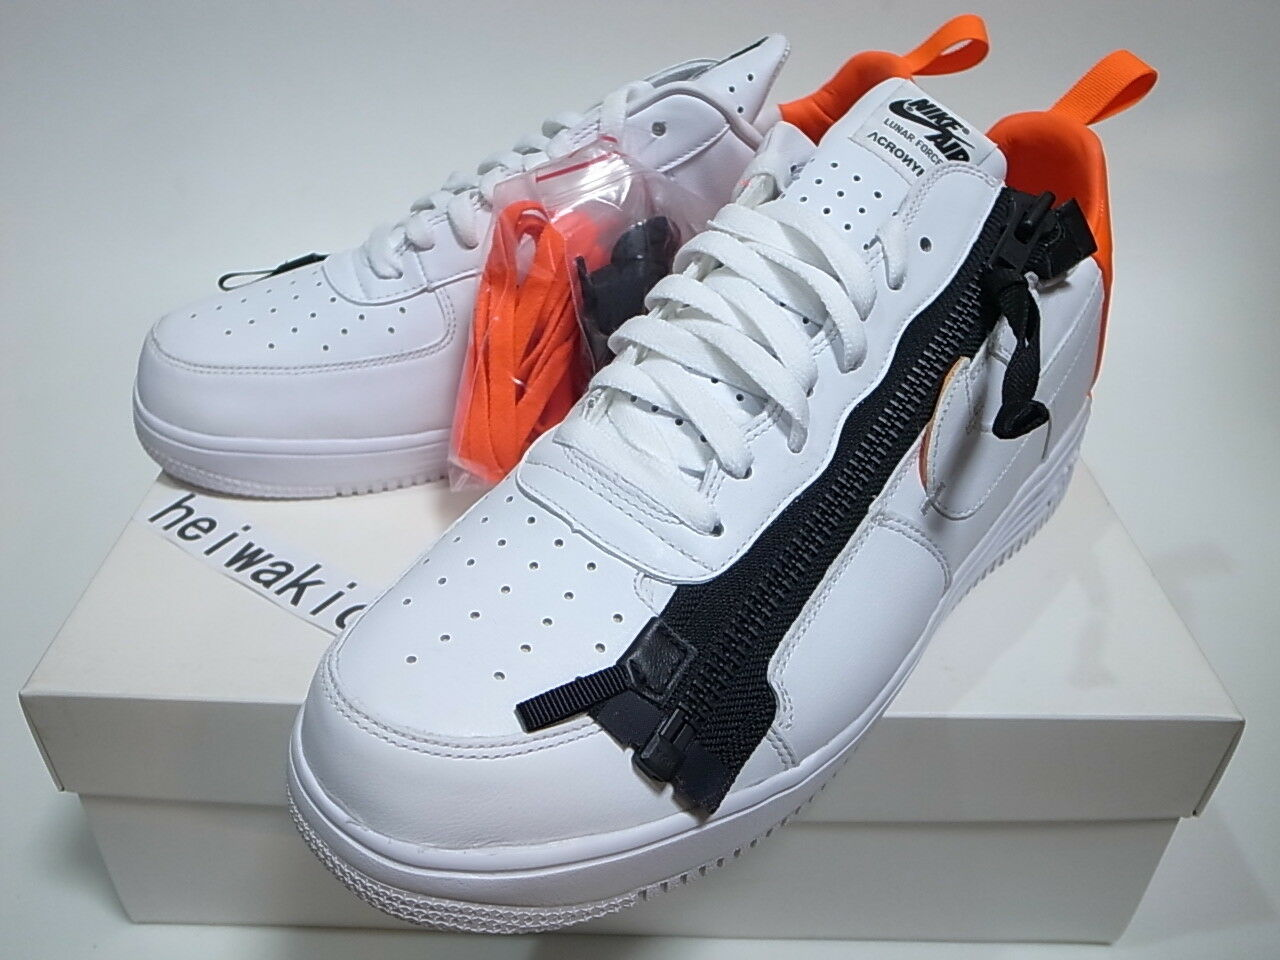 meet 7e37d e57ff Nike Lunar Force 1 SP Acronym White Bright Crimson Size 13 (698699 116) for  sale online  eBay